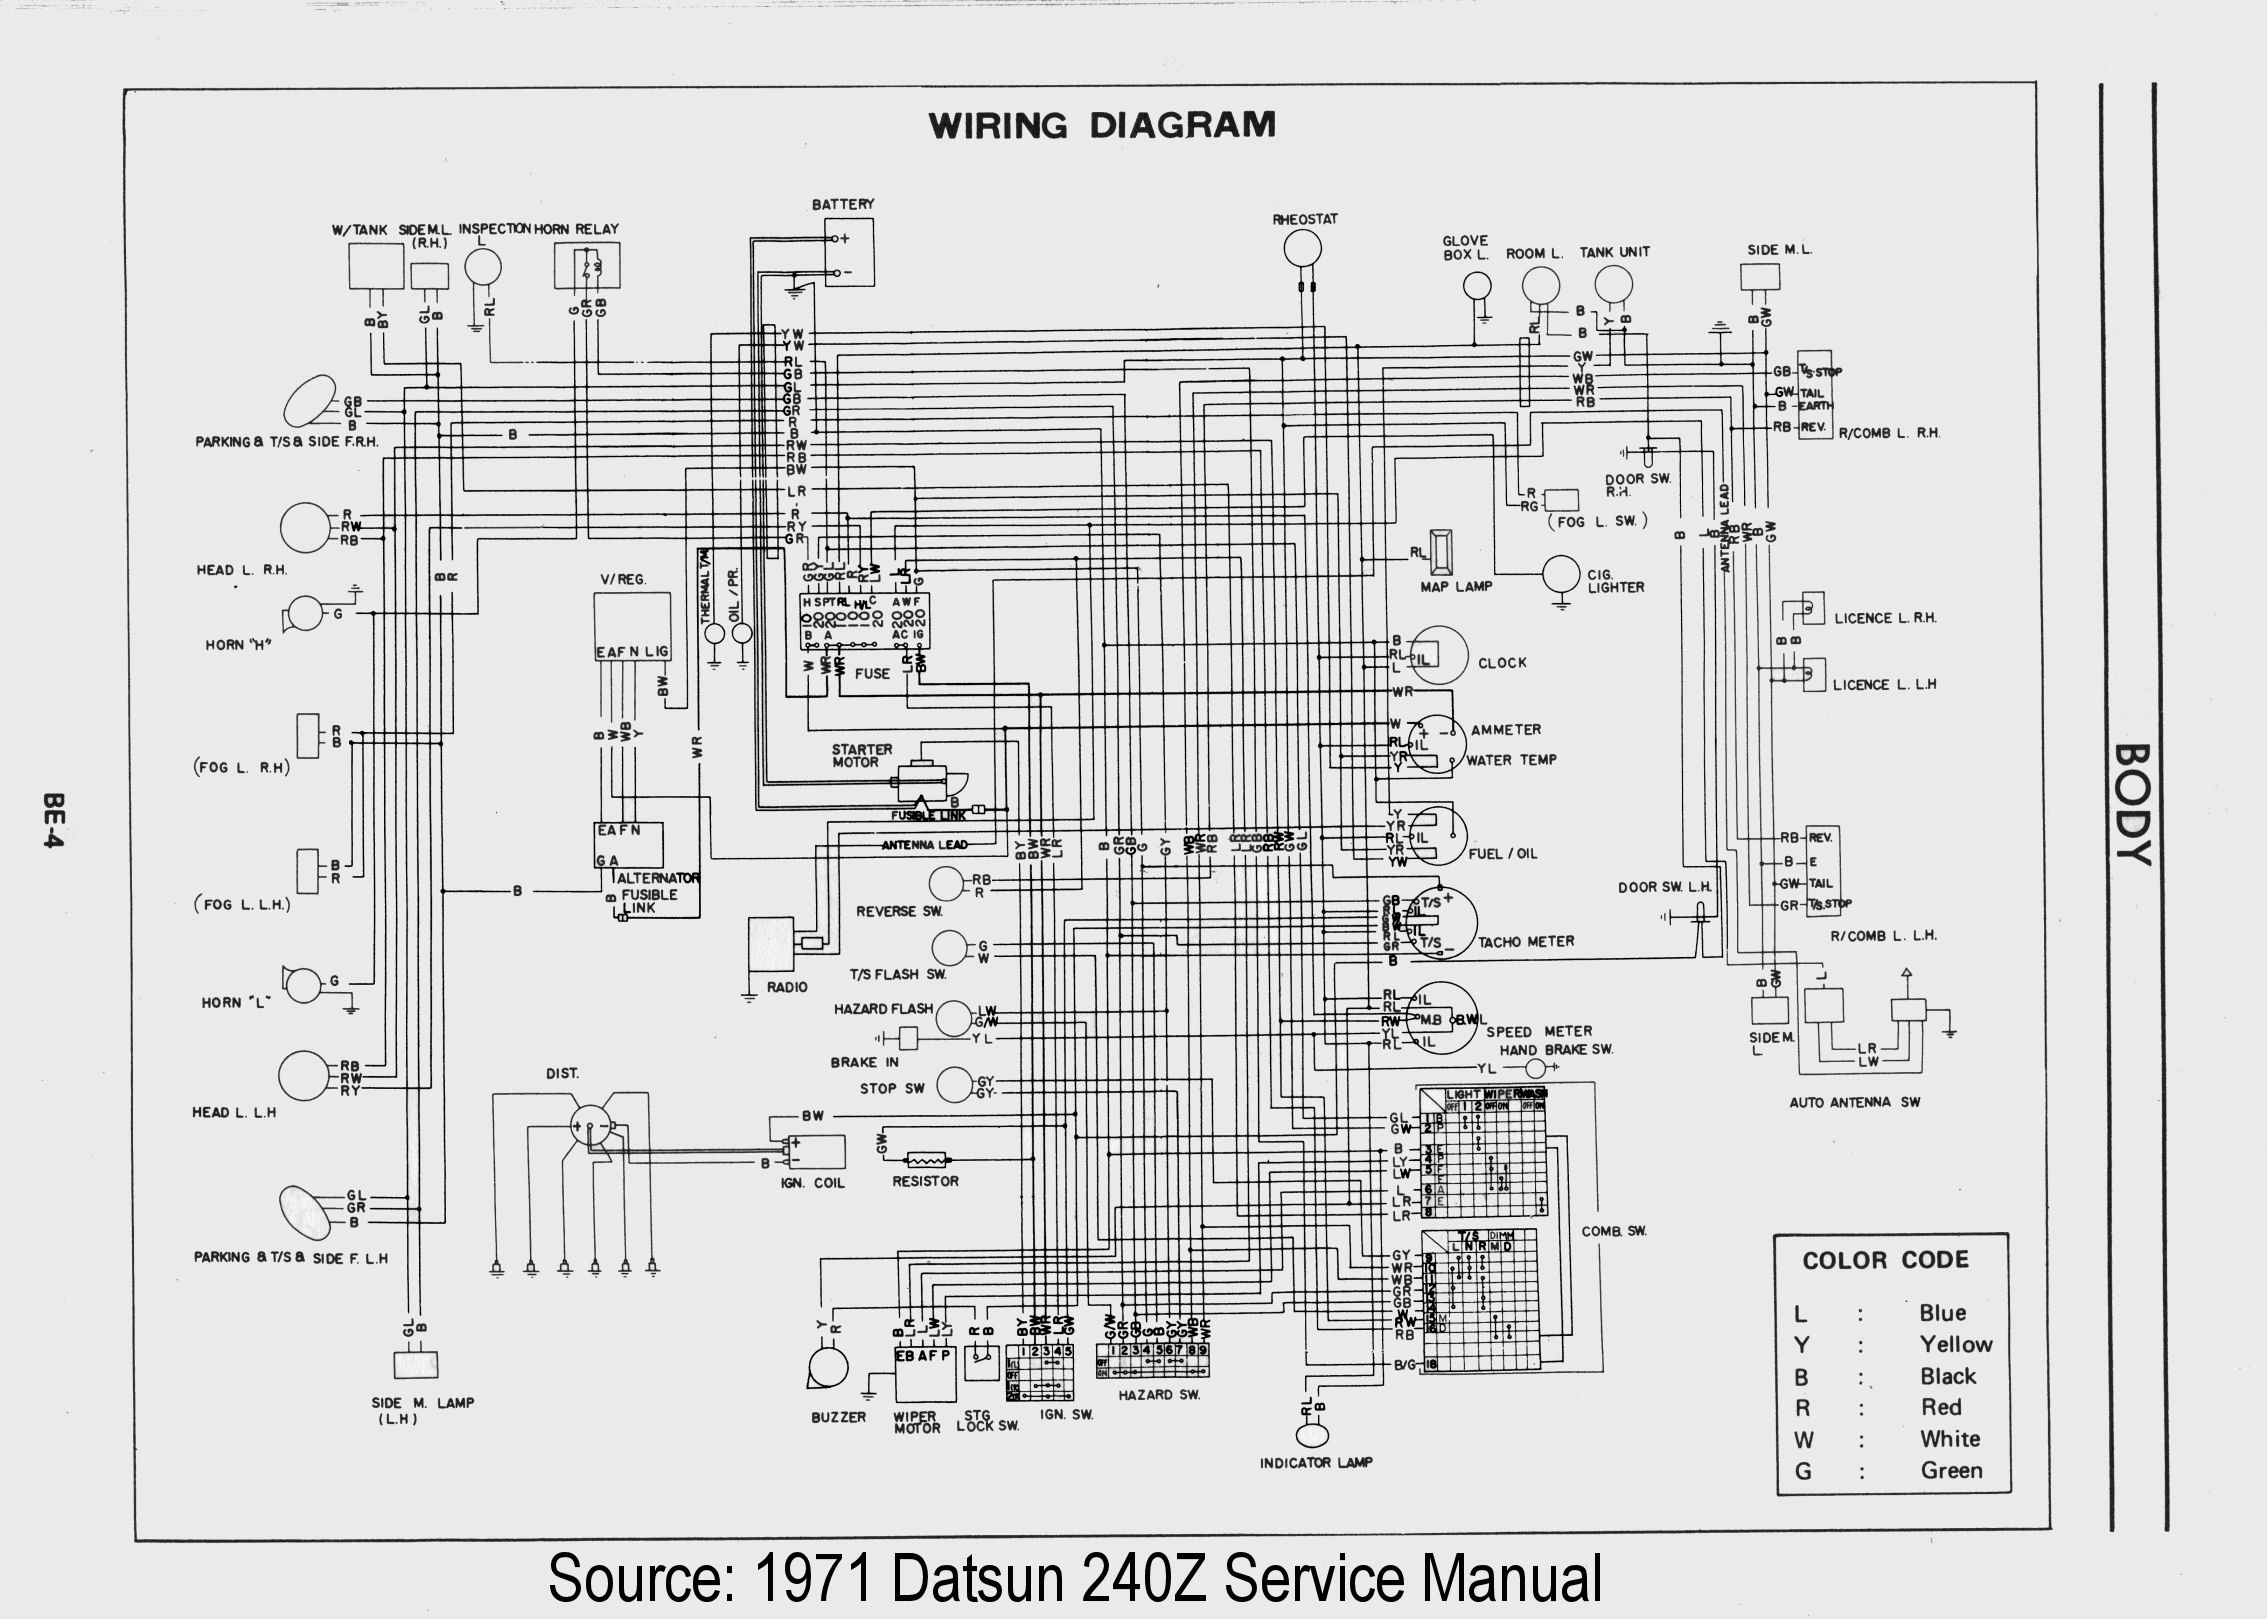 Generic Car Engine Compartment Diagram Worksheet And Wiring 2012 Dodge Charger Fuse Box Troubleshooting Checklist Woodworkerb Rh Com 2000 Caravan